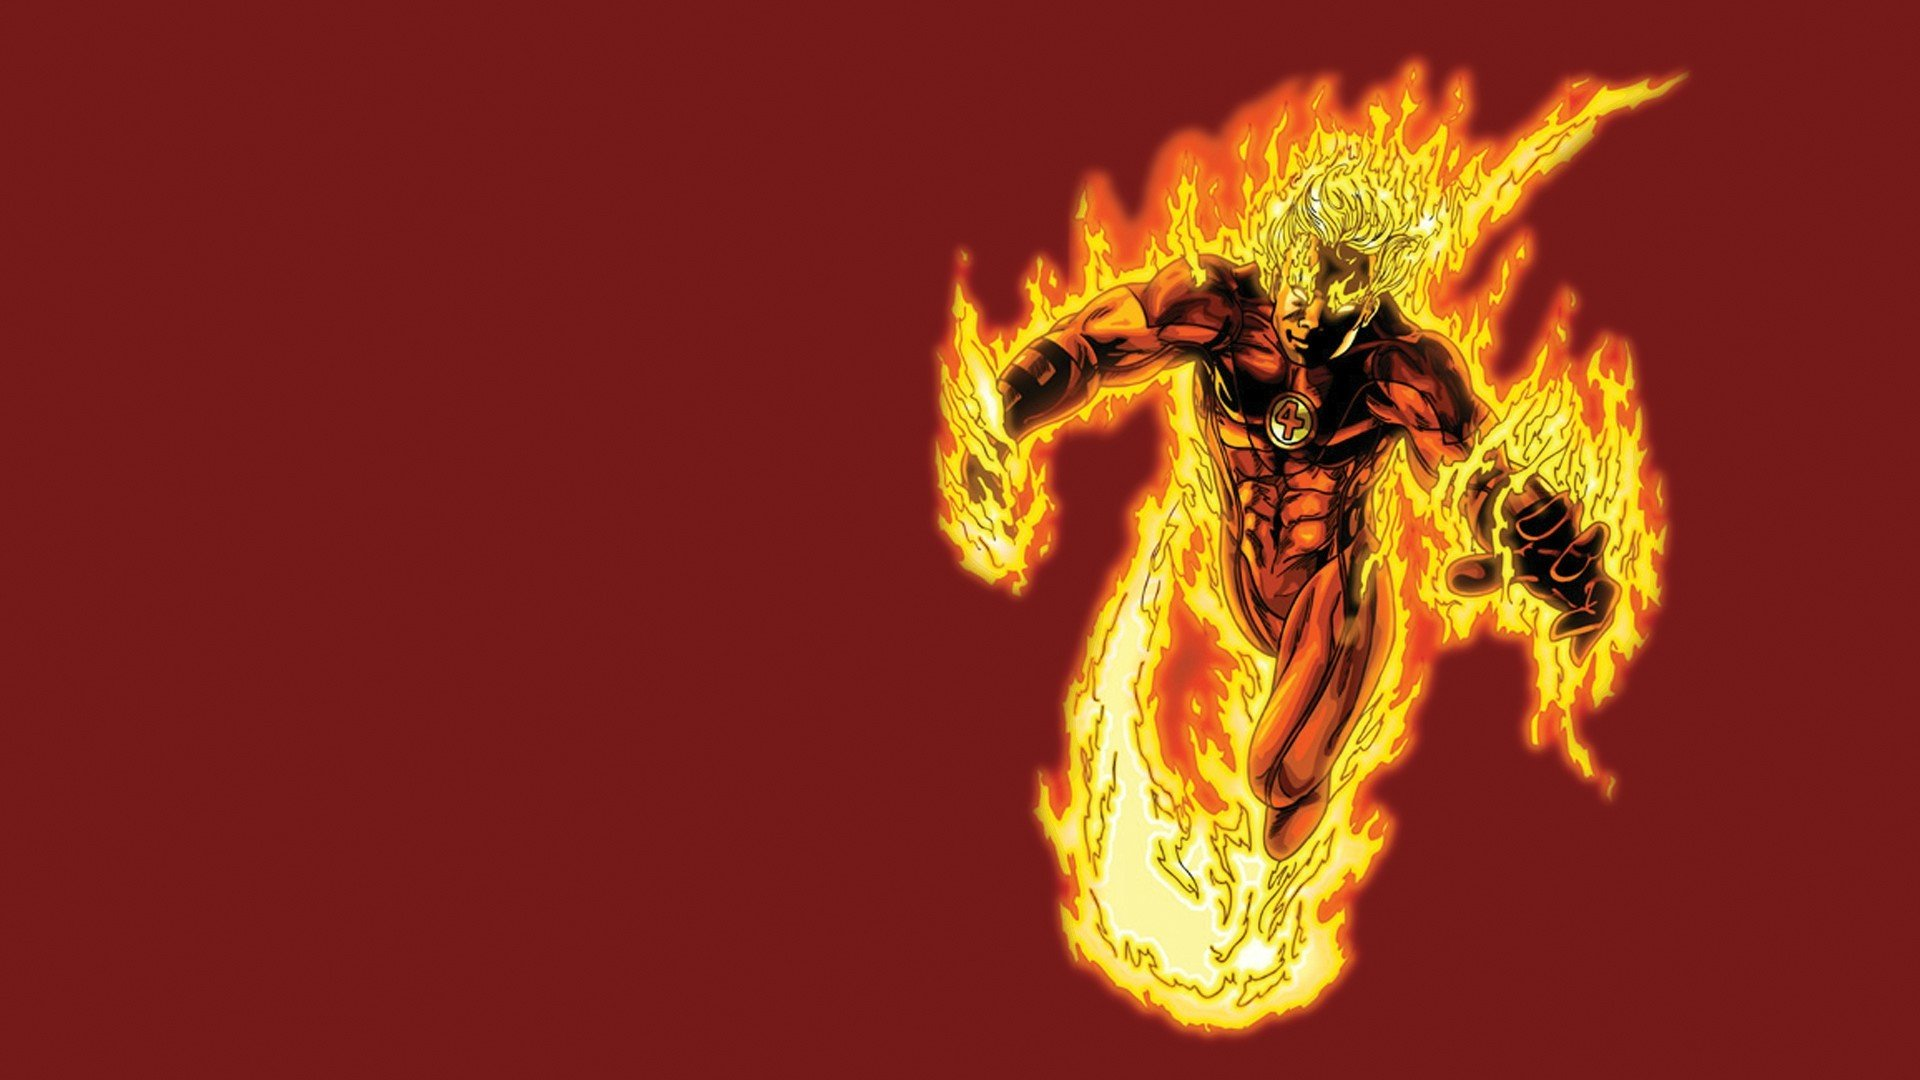 Human Torch Wallpaper 70 images 1920x1080